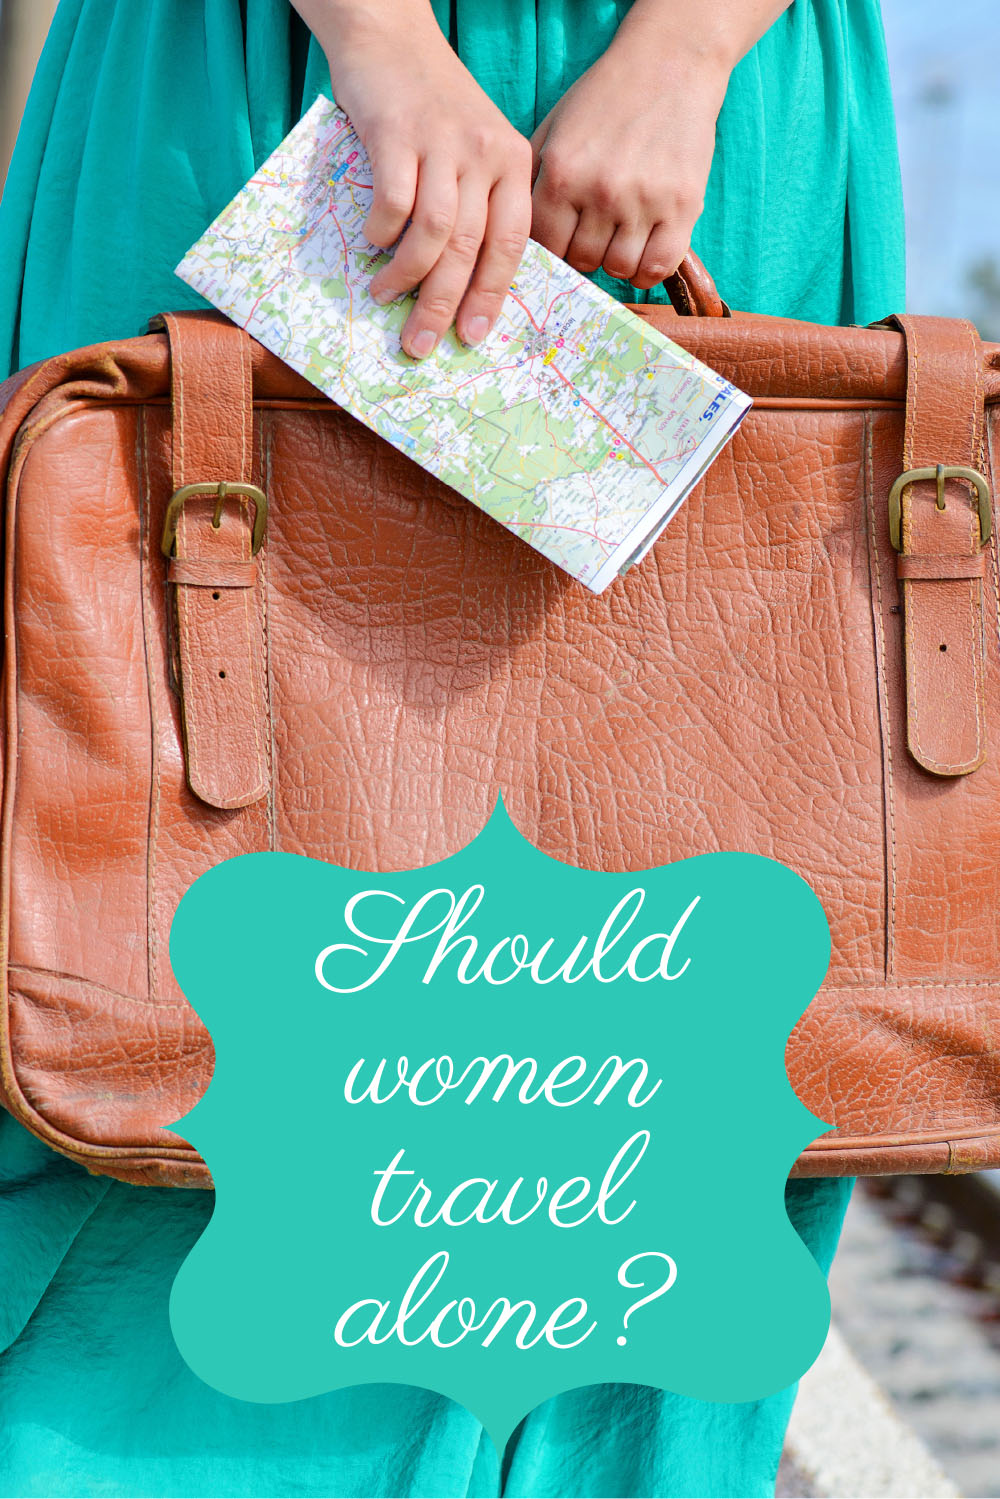 Should women travel alone?